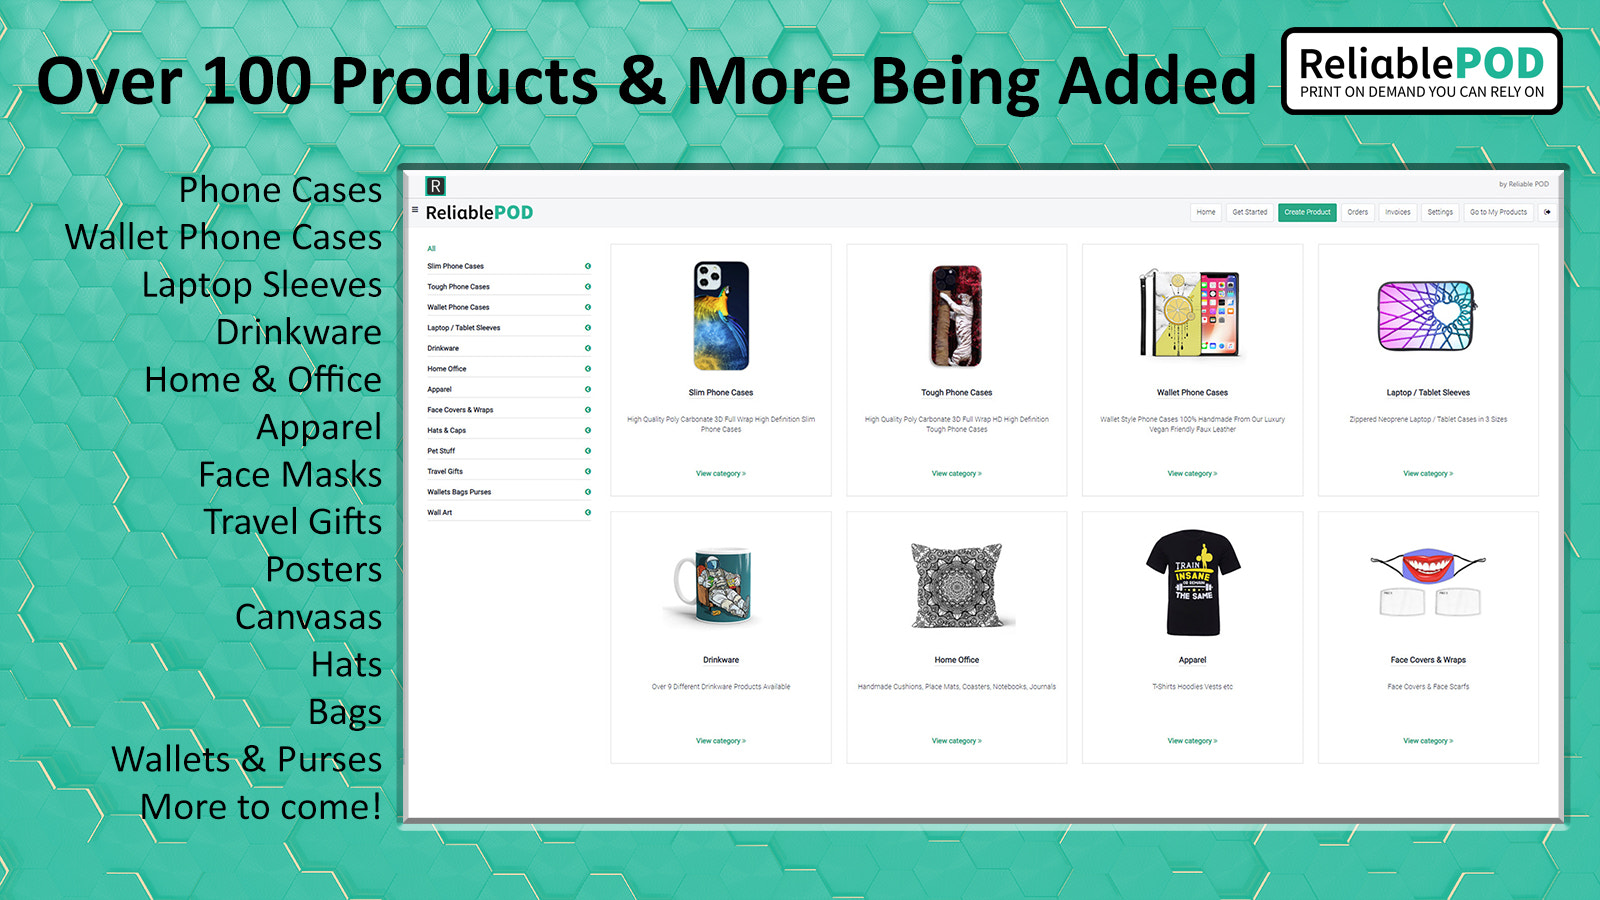 Over 100 Products To Choose From & More Being Added Every Month